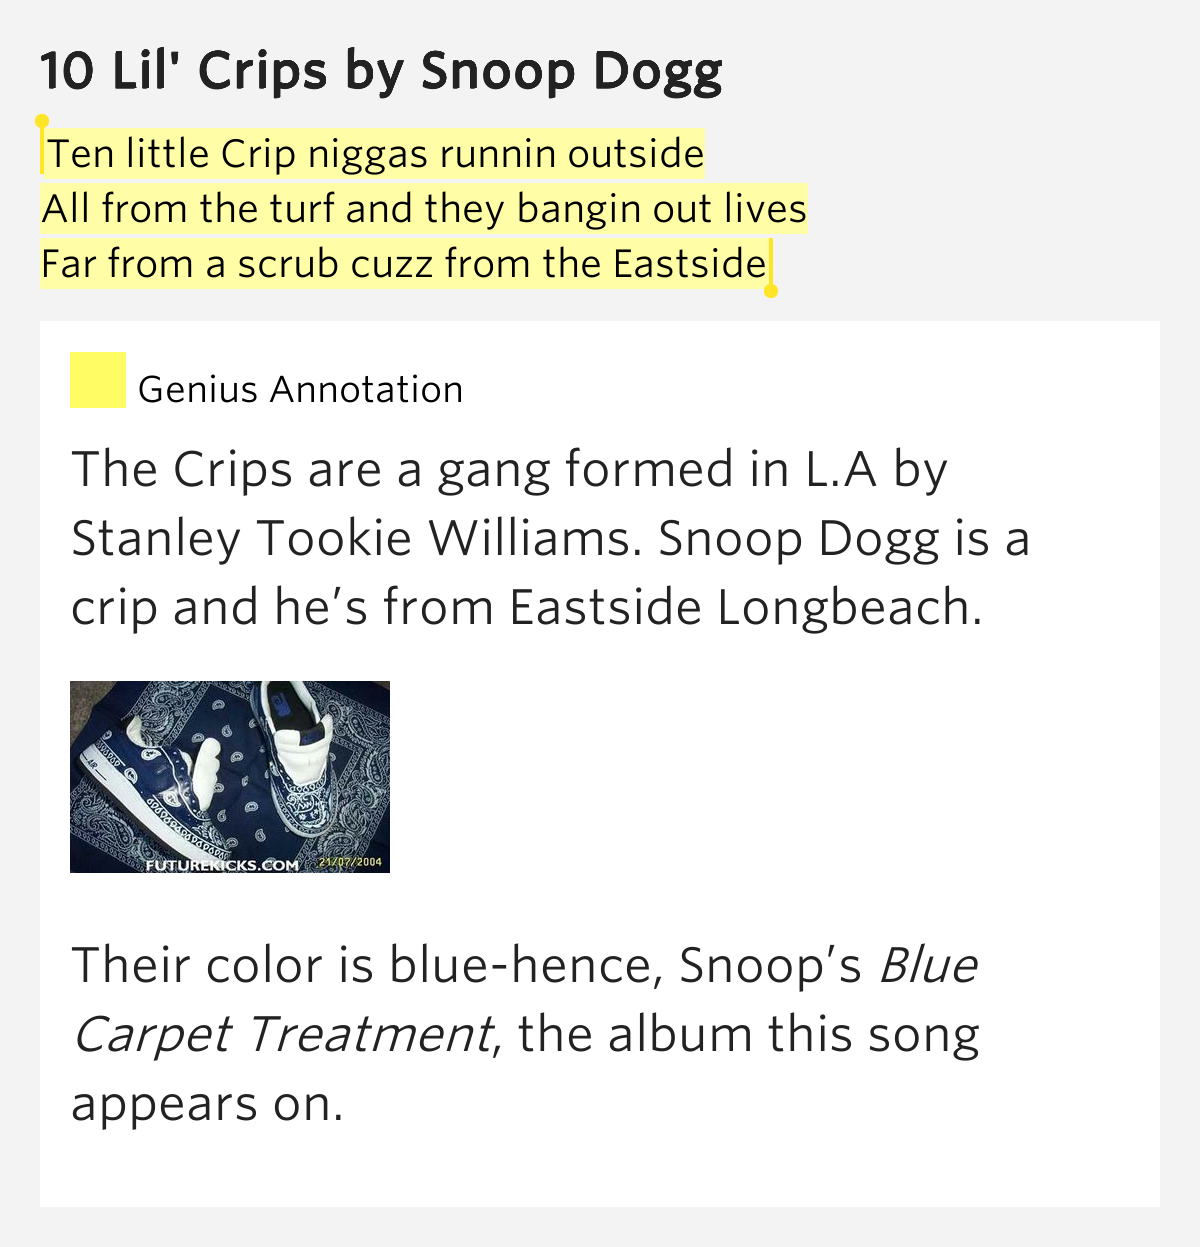 Snoop Dogg - 10 Lil' Crips Lyrics | MetroLyrics